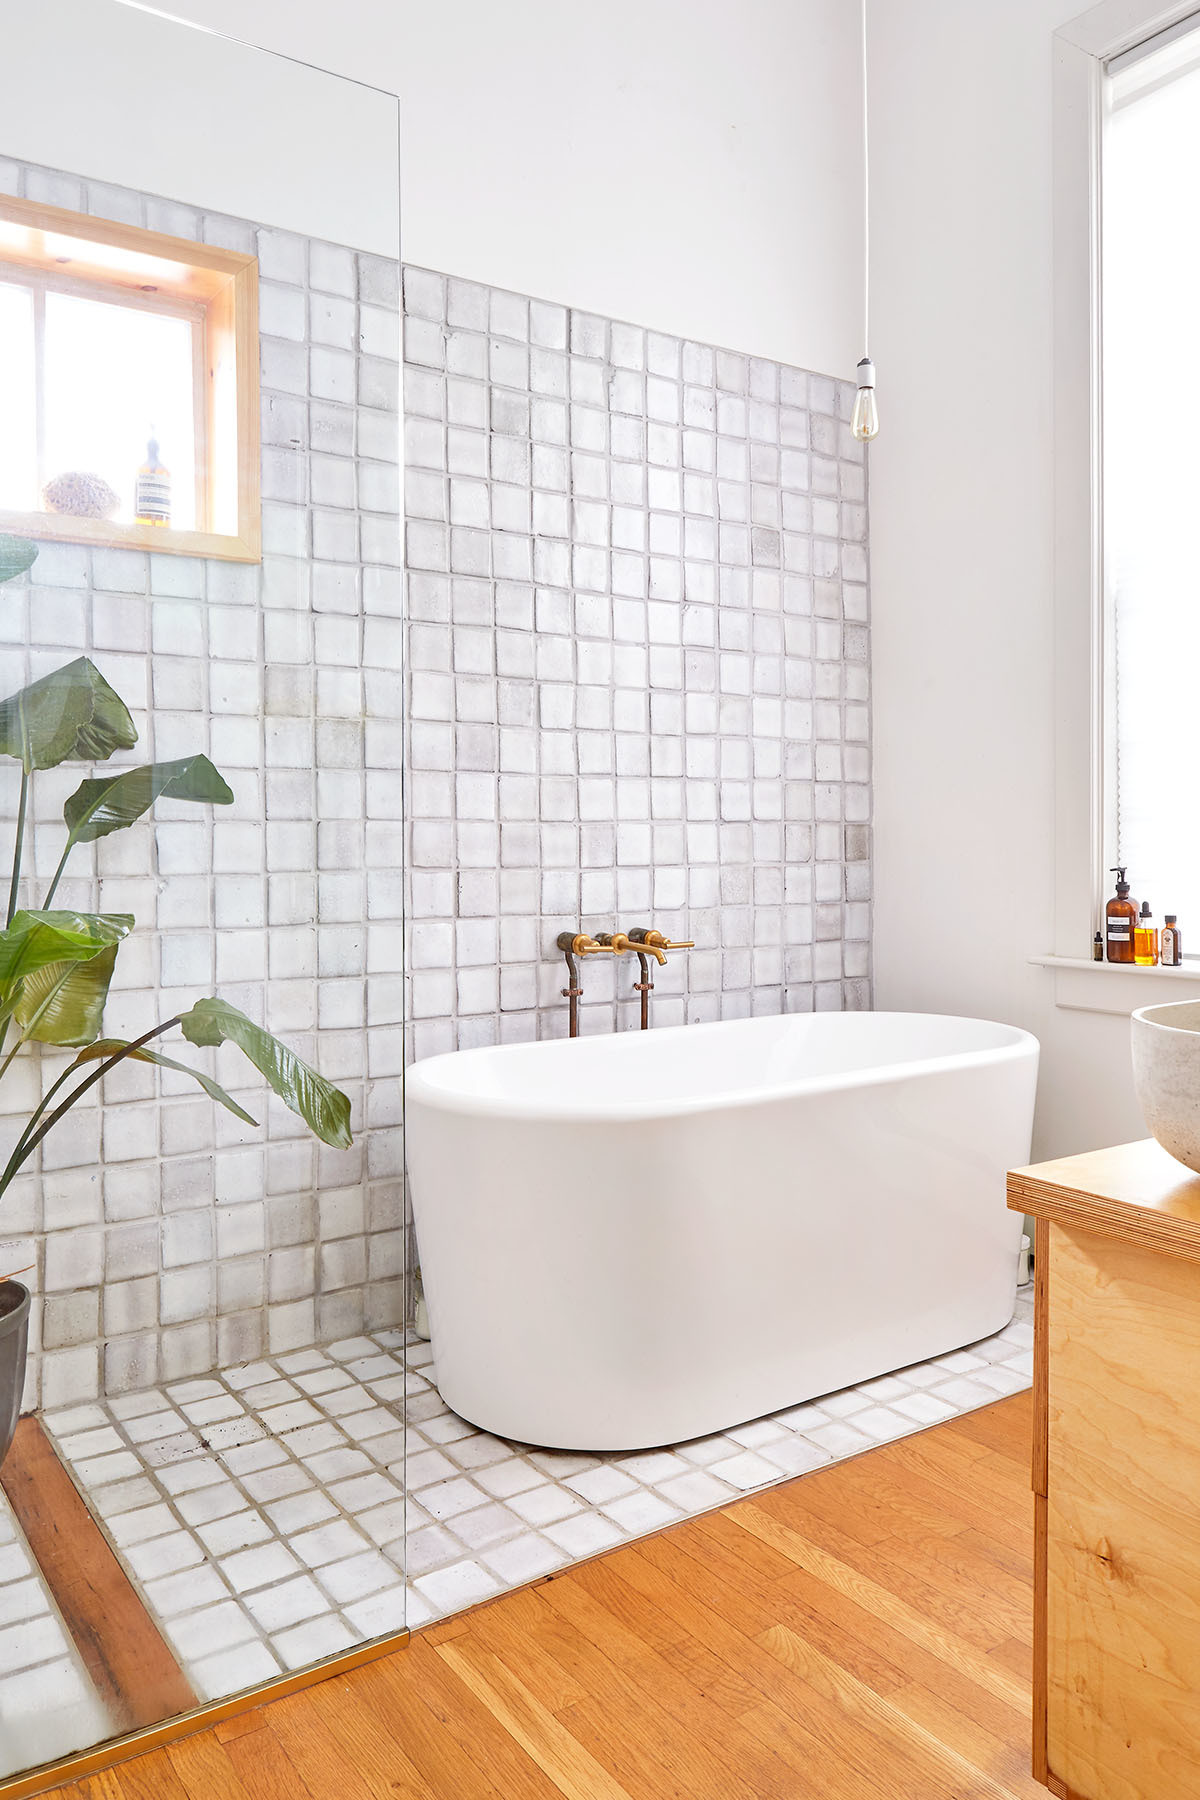 The couple opted to carve out bedroom space to create a contemporary master bath, complete with vintage wall tiles that date back to the 1970s.Wayfair Bath |Kohler Hardware.